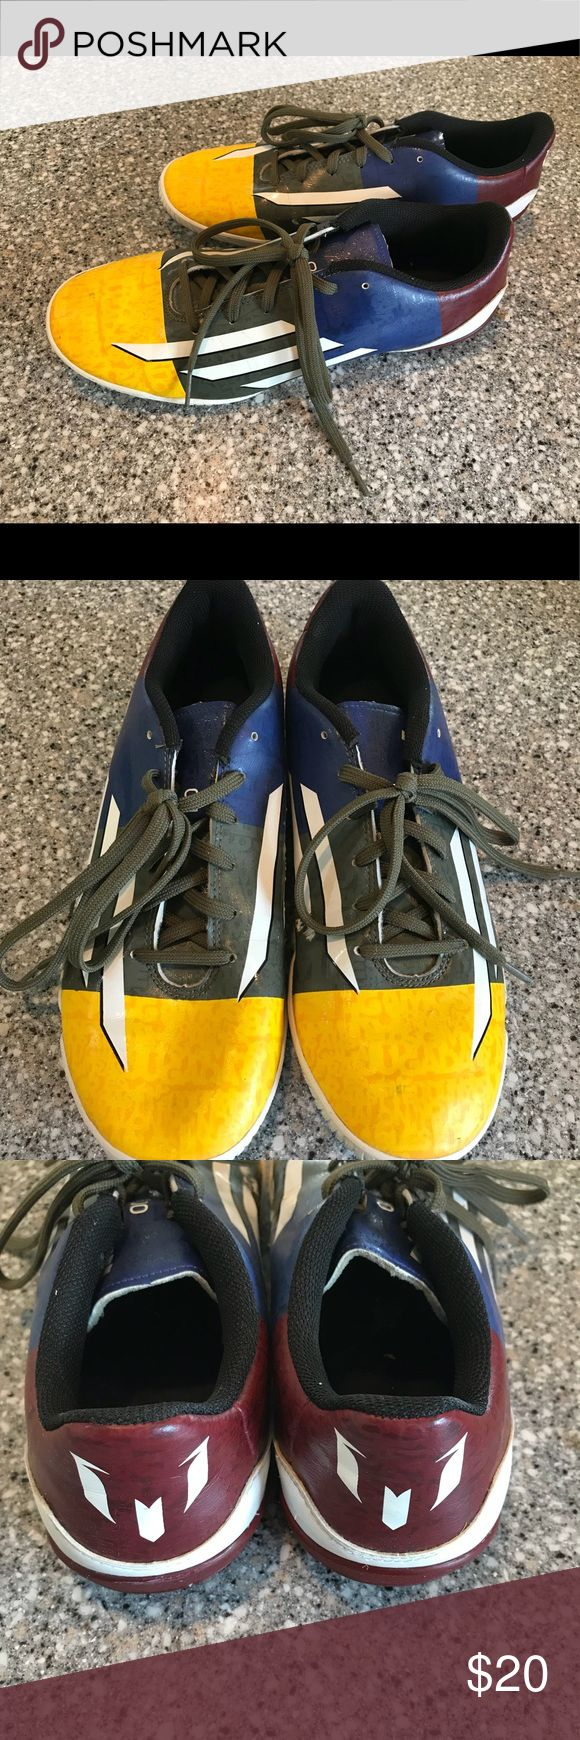 Adidas Messi Indoor Soccer Shoes Good used condition. Light dirt and scuffs. adidas Shoes